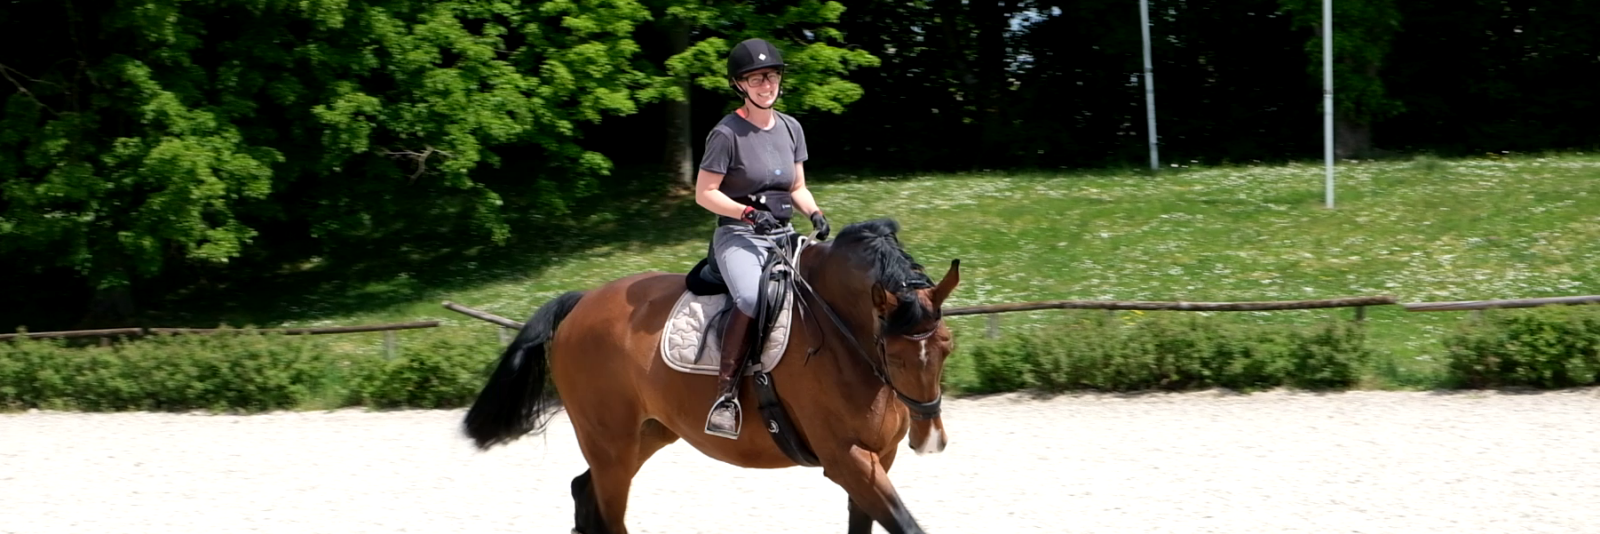 A person riding a horse while wearing Tobii Pro Glasses 3